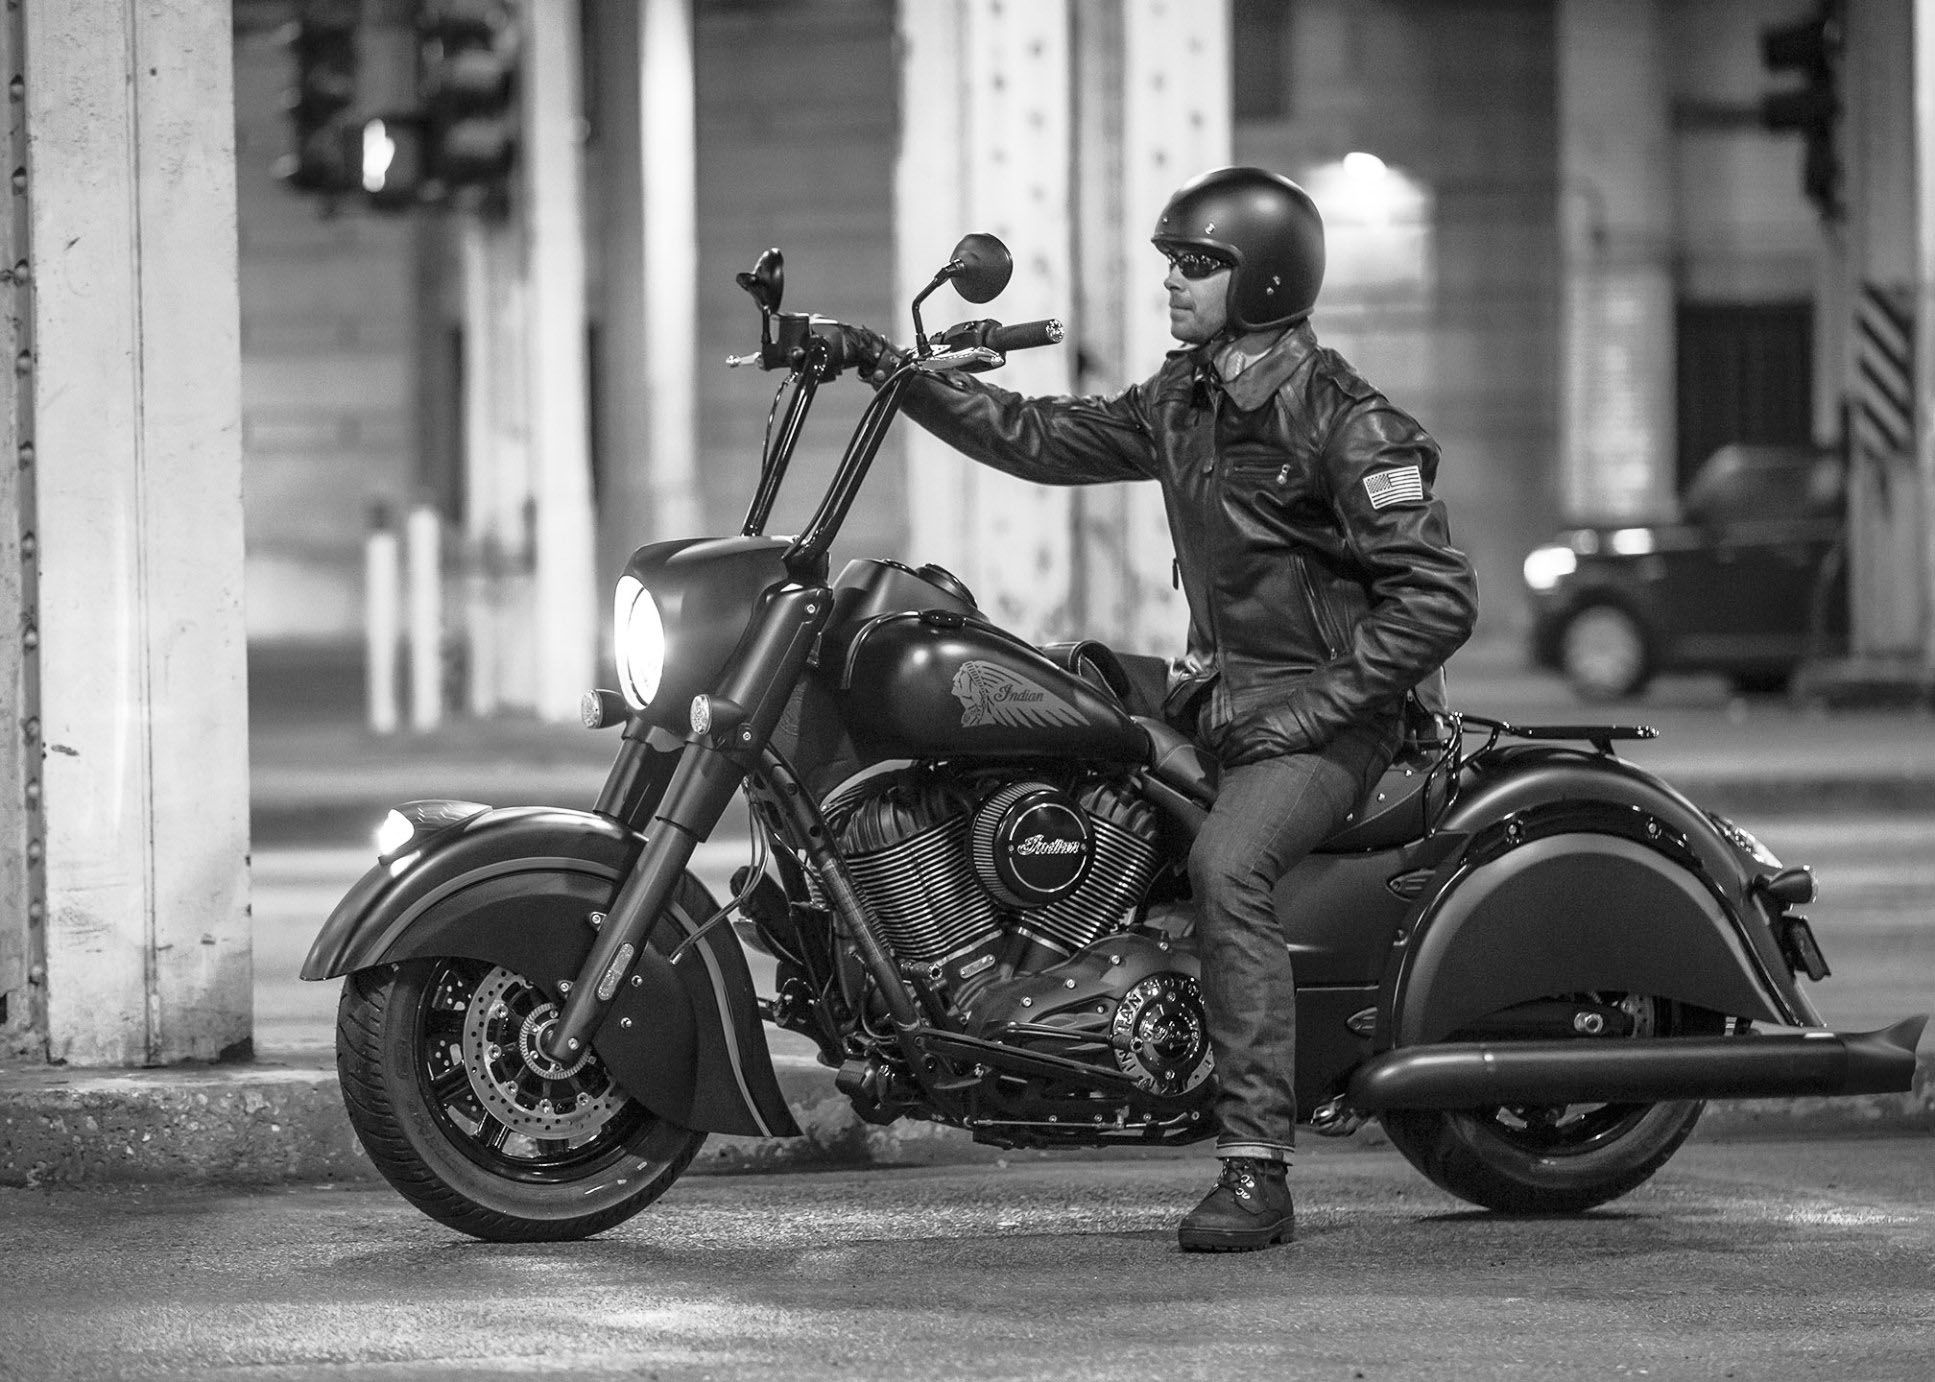 2016 indian chief dark horse hd wallpaper | motorcycles hd wallpaper